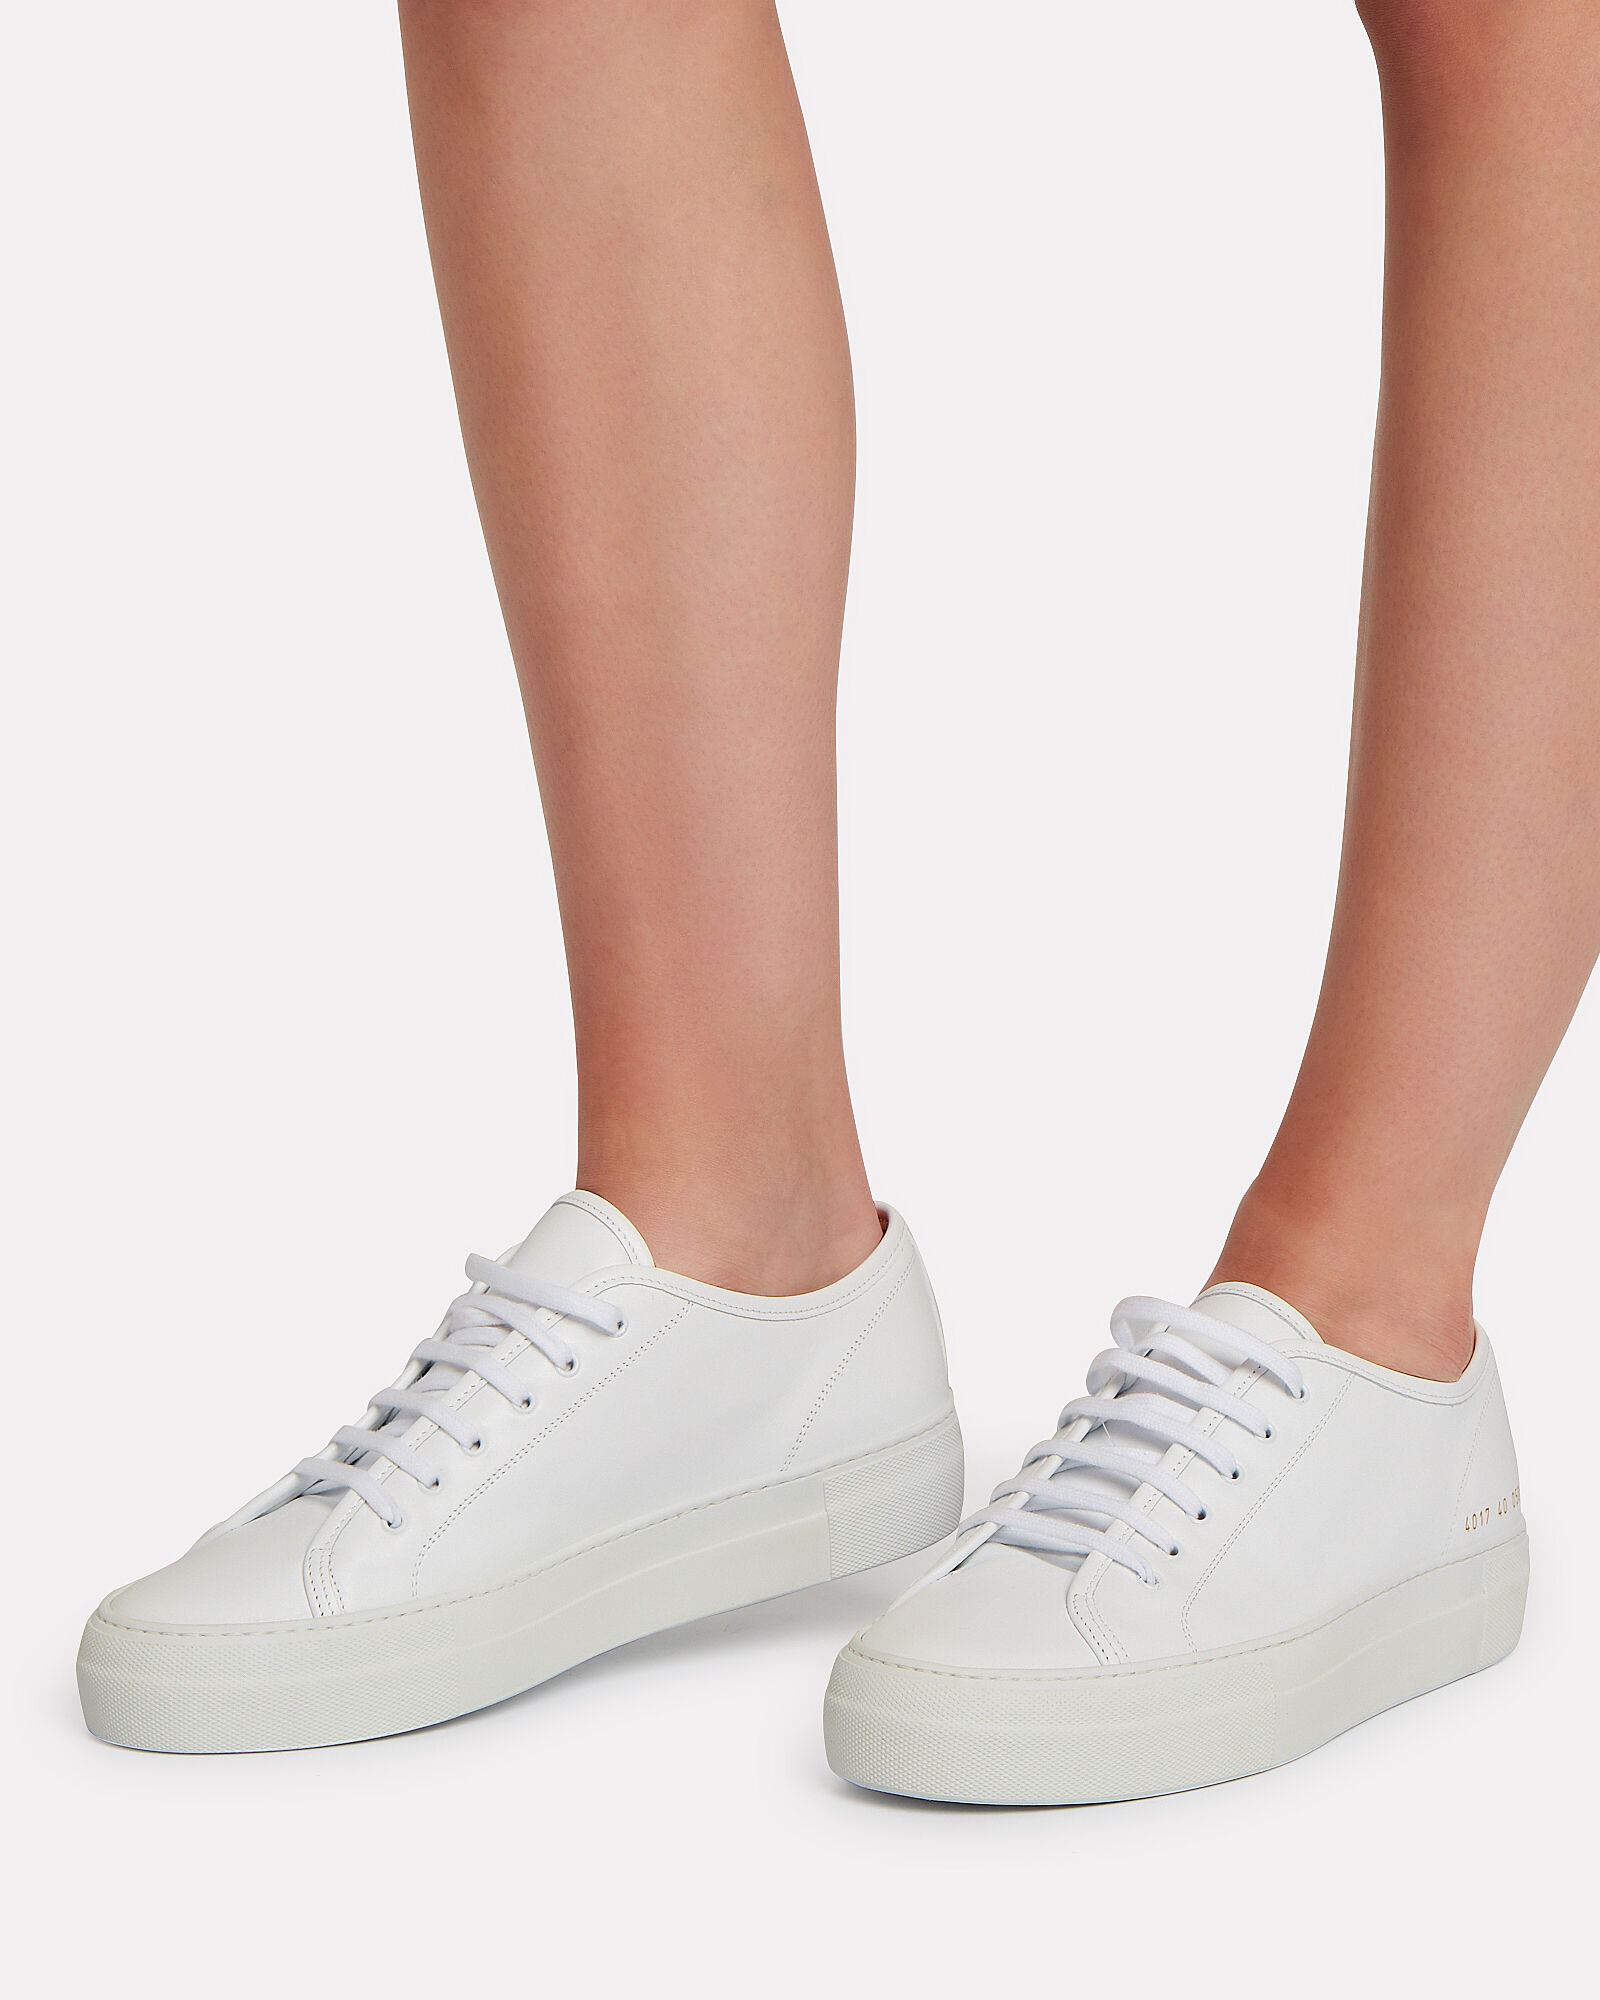 Tournament Low Platform Super Sneakers, WHITE, hi-res